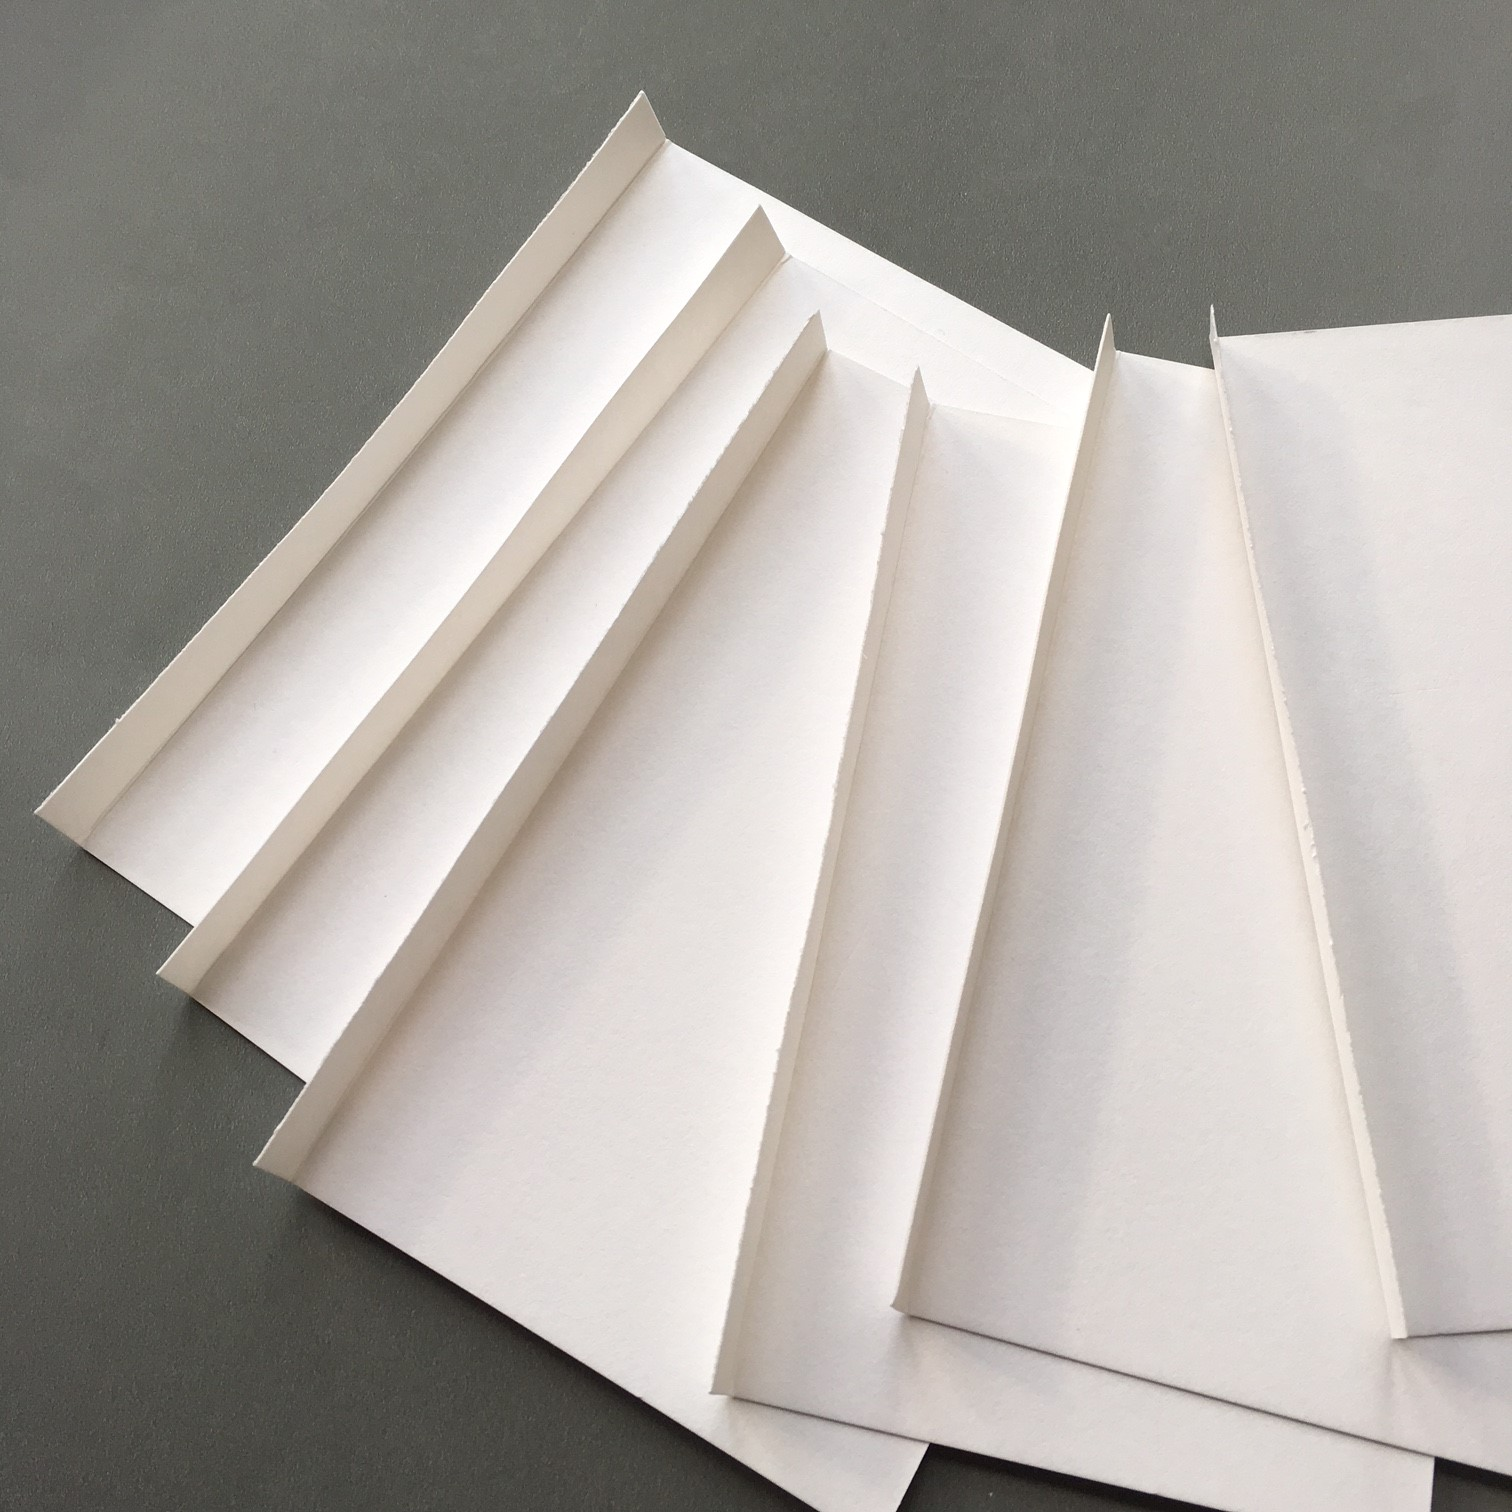 Making the accordion-like notebook shape - creased and folded paper pieces